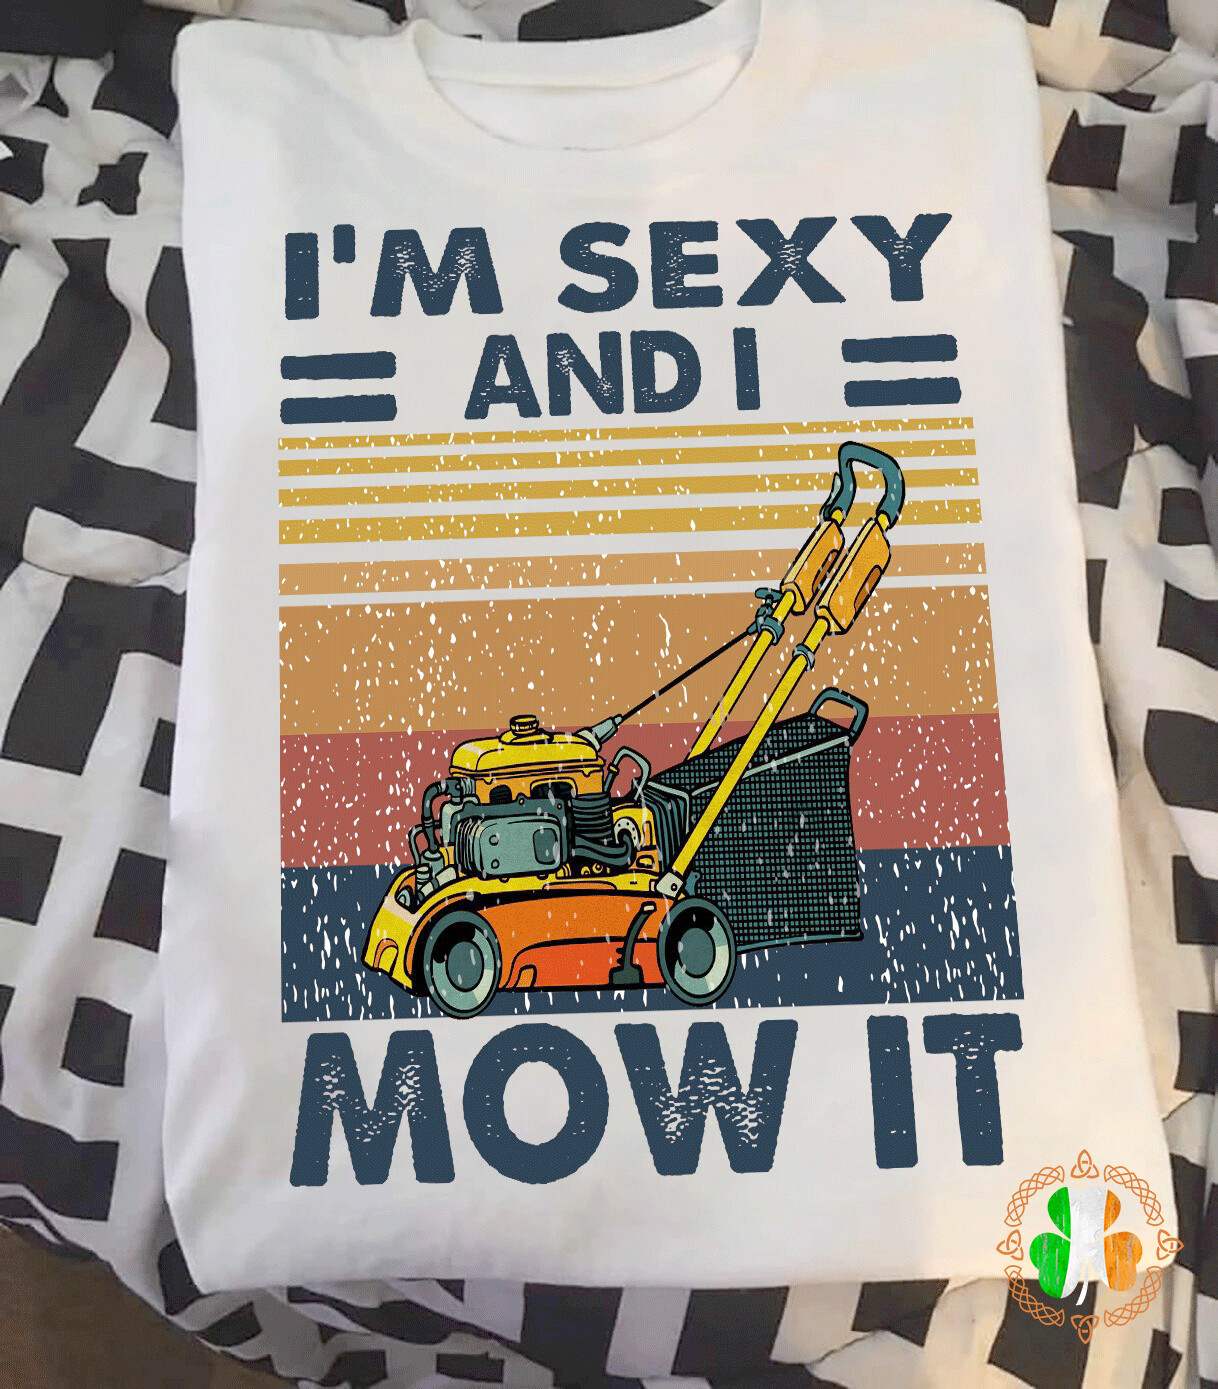 I'm Sexy And I Mow It, Vintage shirt